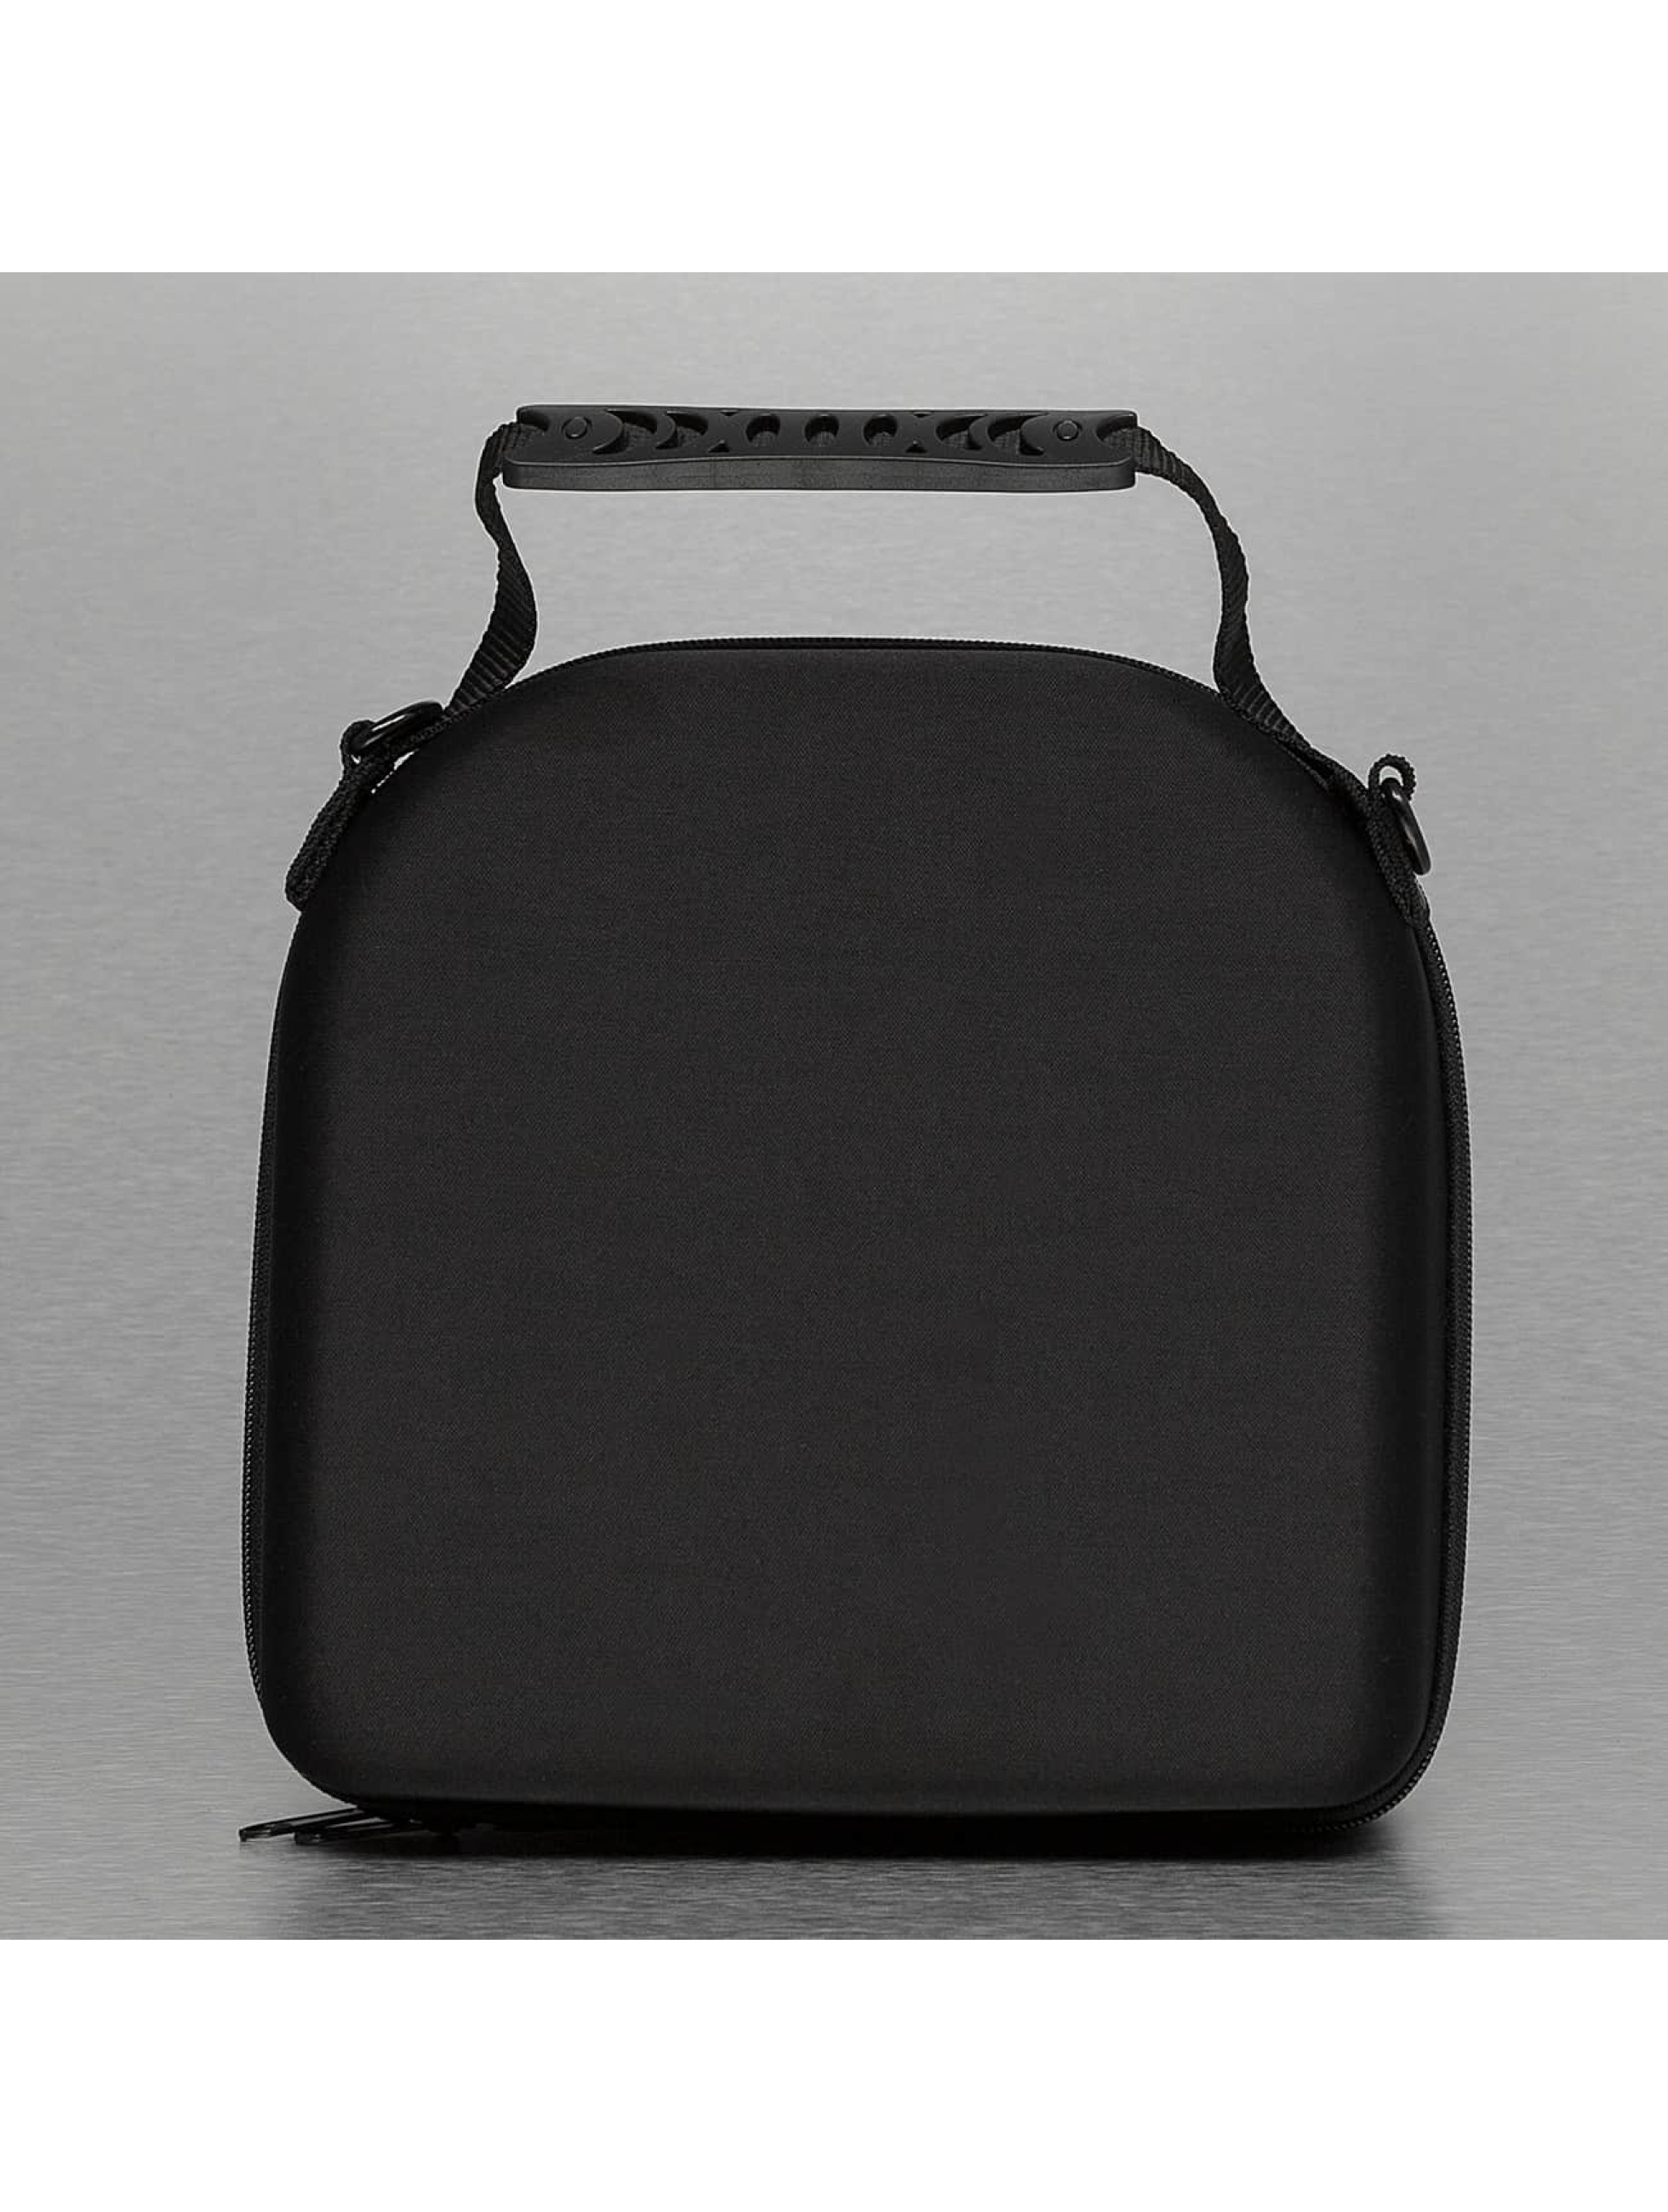 Cap Crony Autres 2K Carrier Travel Box noir